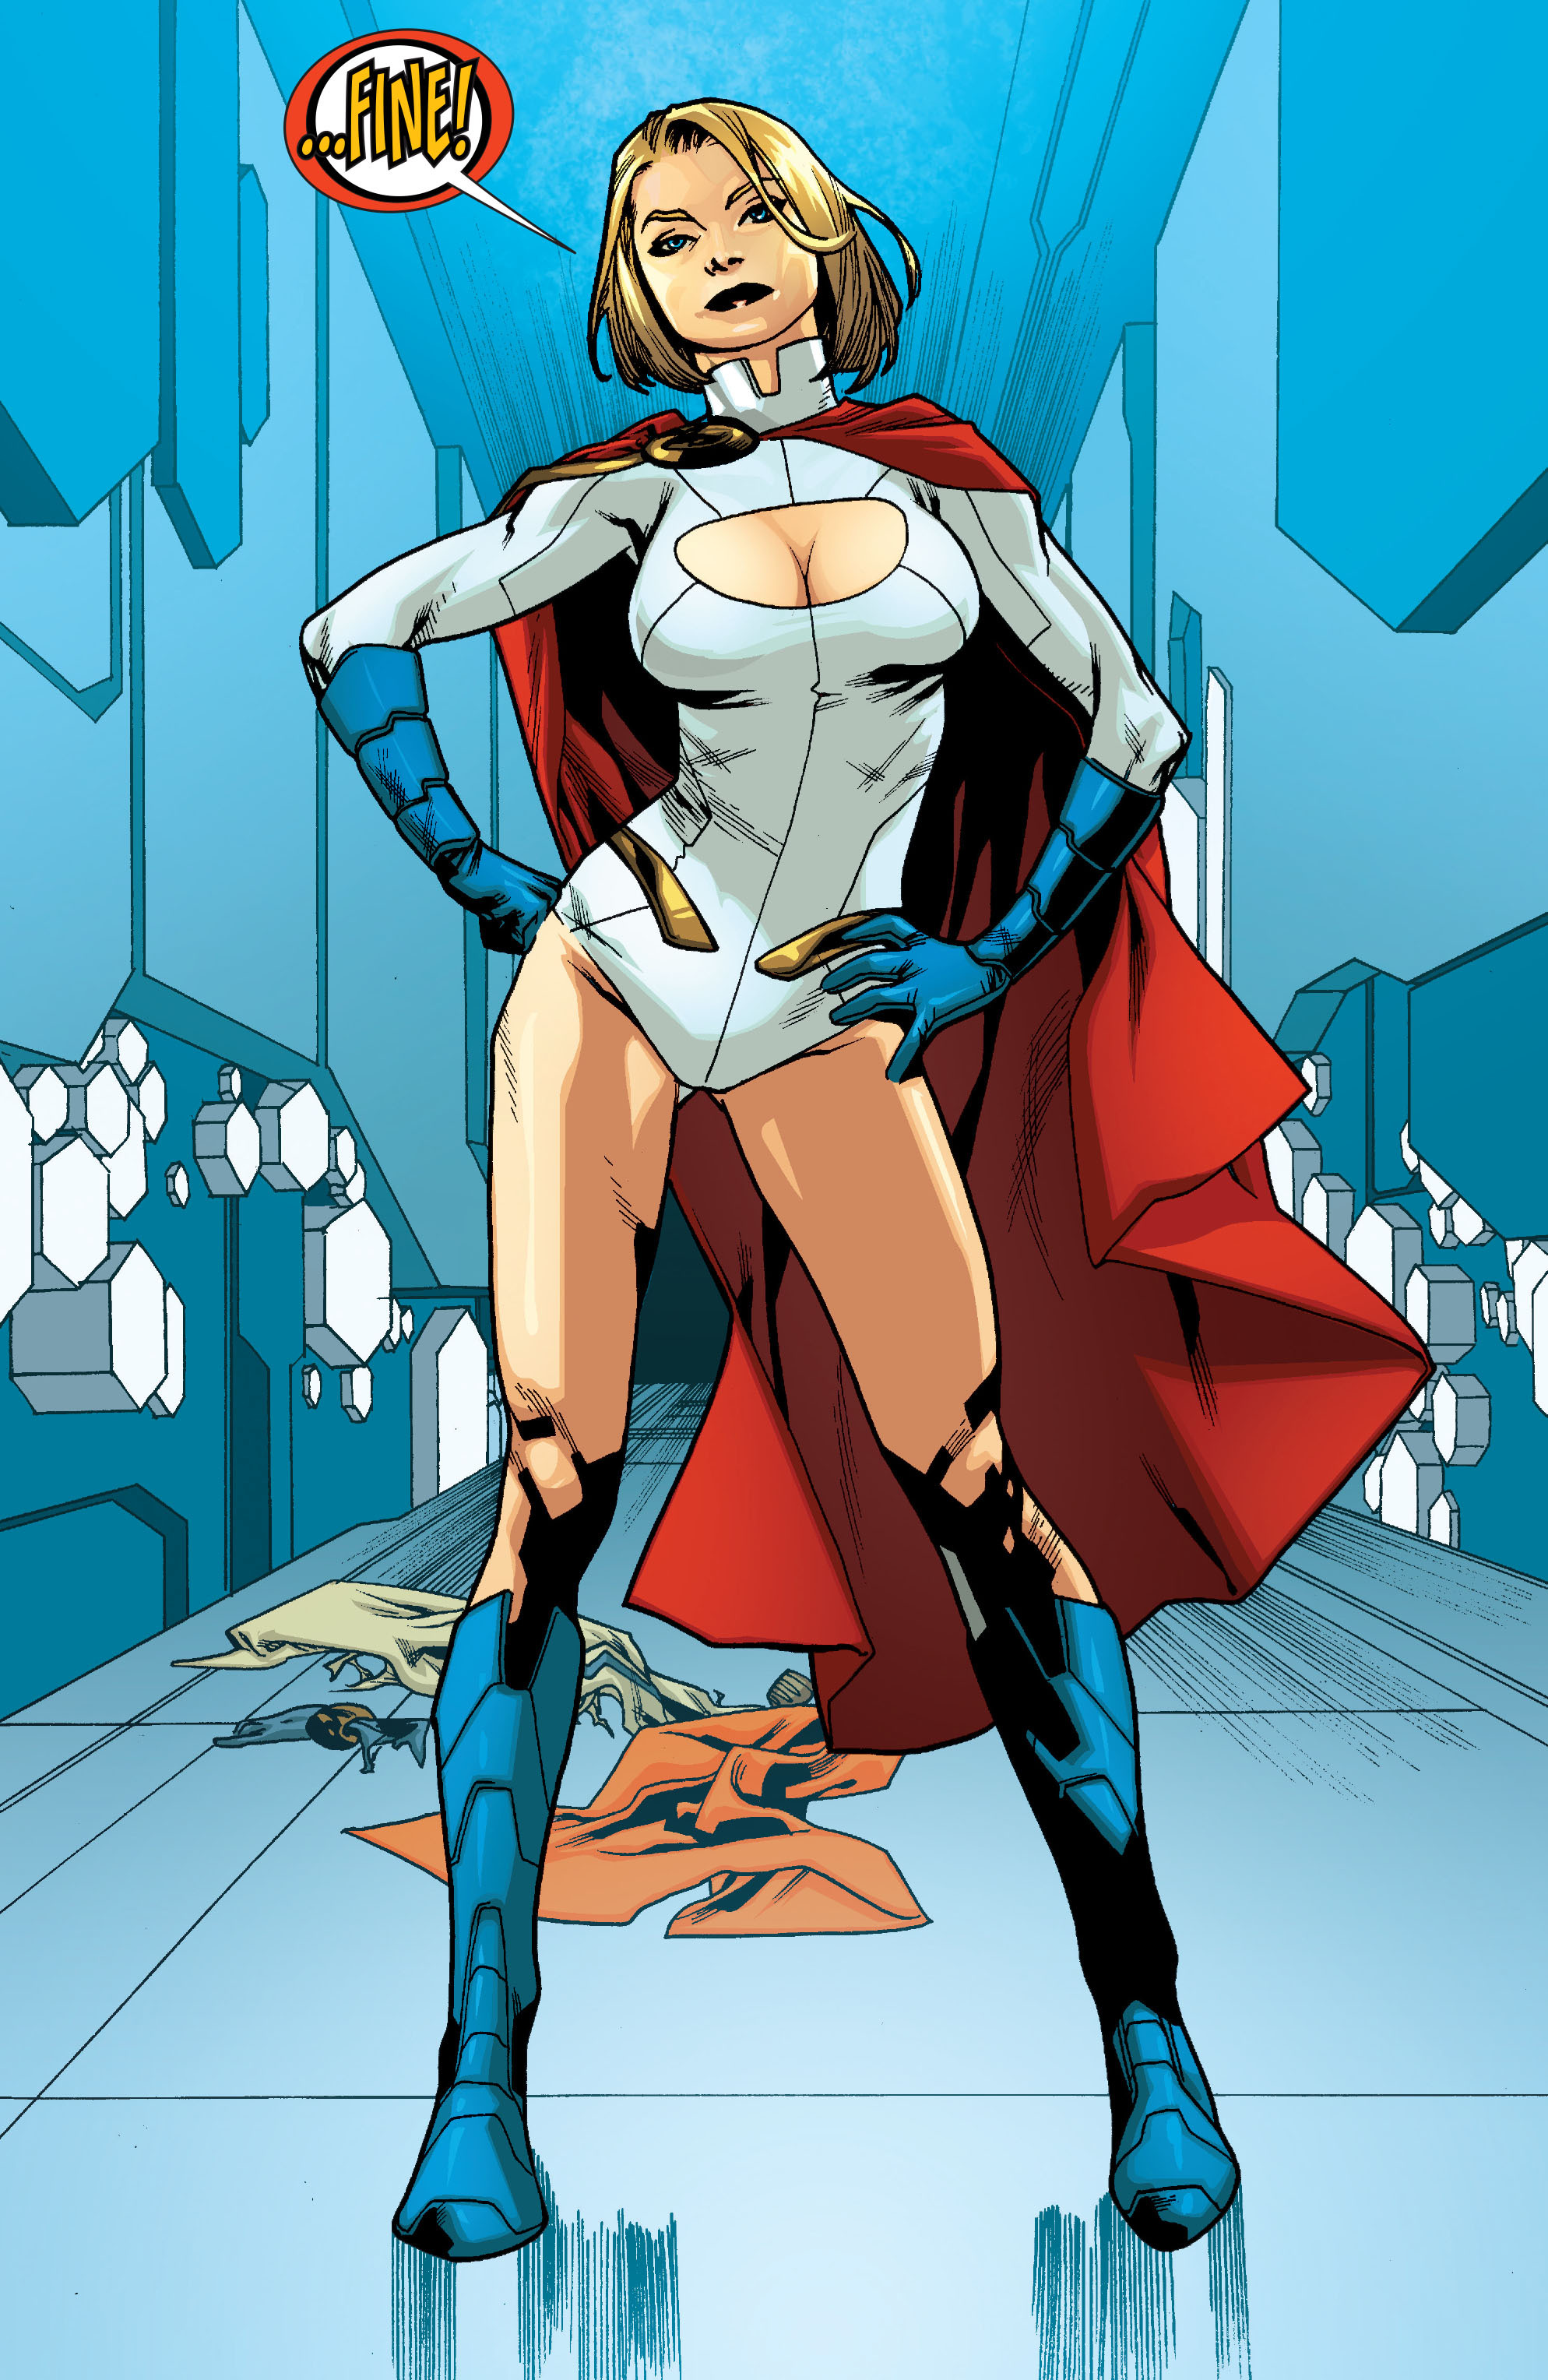 Kara Zor-El Earth 2 003.jpg  sc 1 st  DC Database - Fandom & Image - Kara Zor-El Earth 2 003.jpg | DC Database | FANDOM powered ...